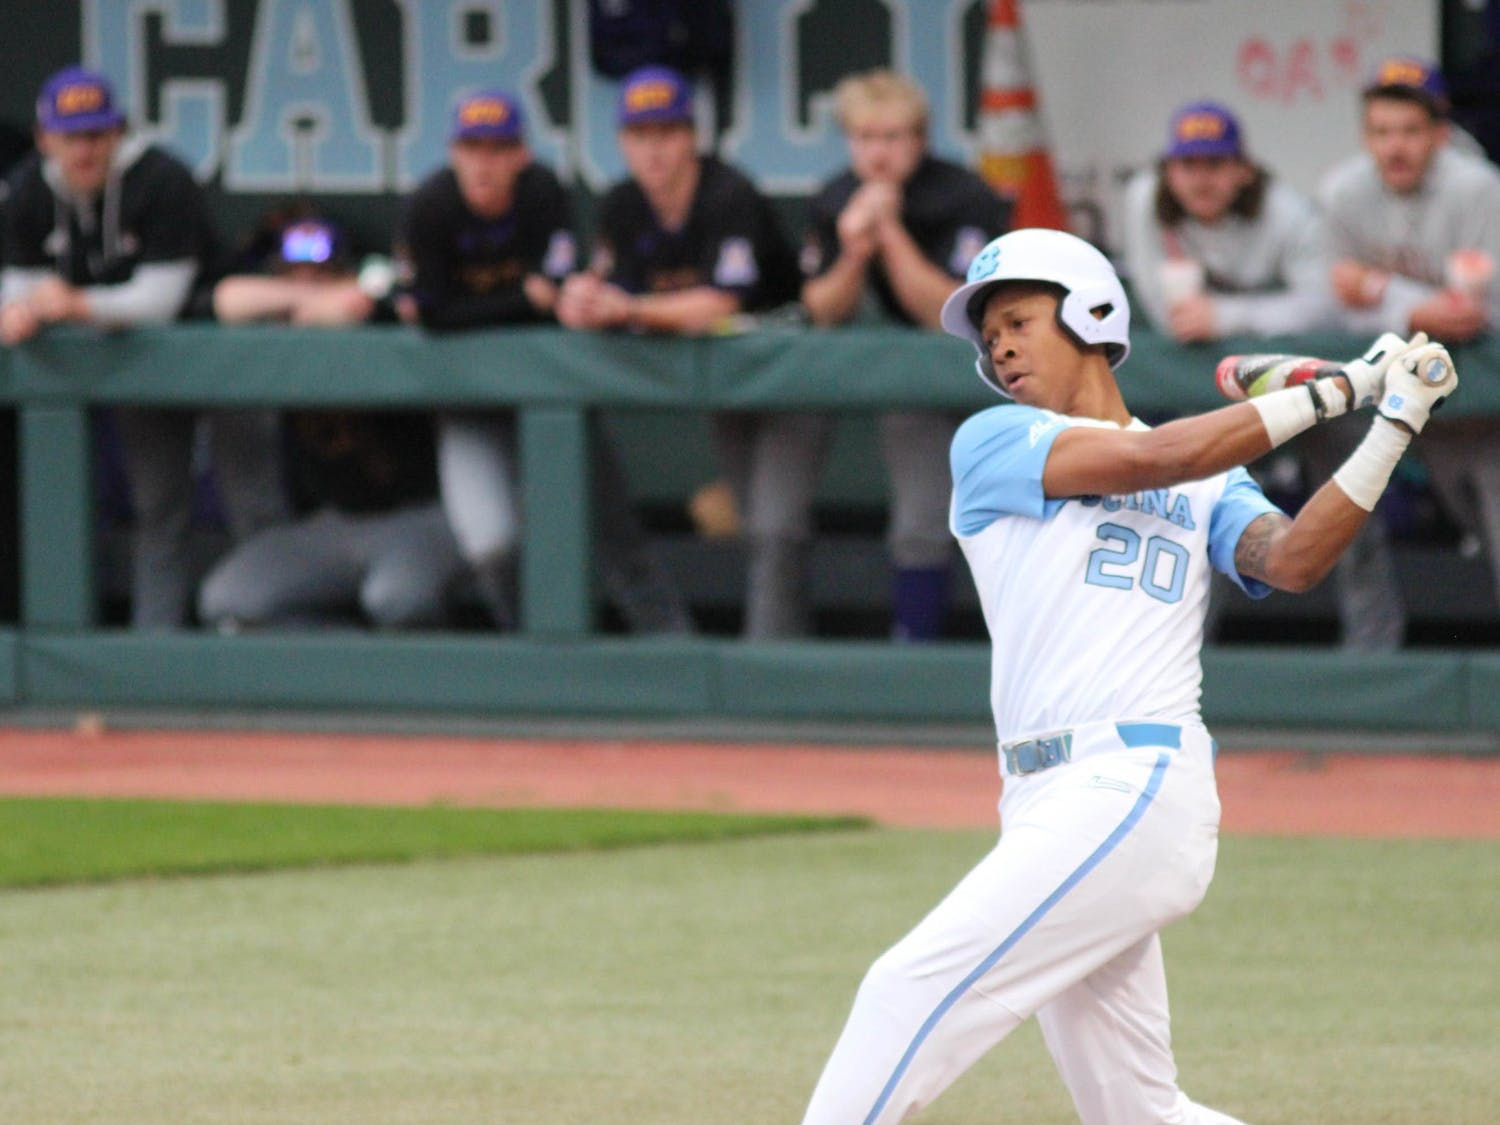 UNC sophomore outfielder Justice Thompson (20) offers at a pitch during the Tar Heels' game against East Carolina University at Boshamer Stadium on March 23, 2021. The Tar Heels defeated the Pirates 8-1.